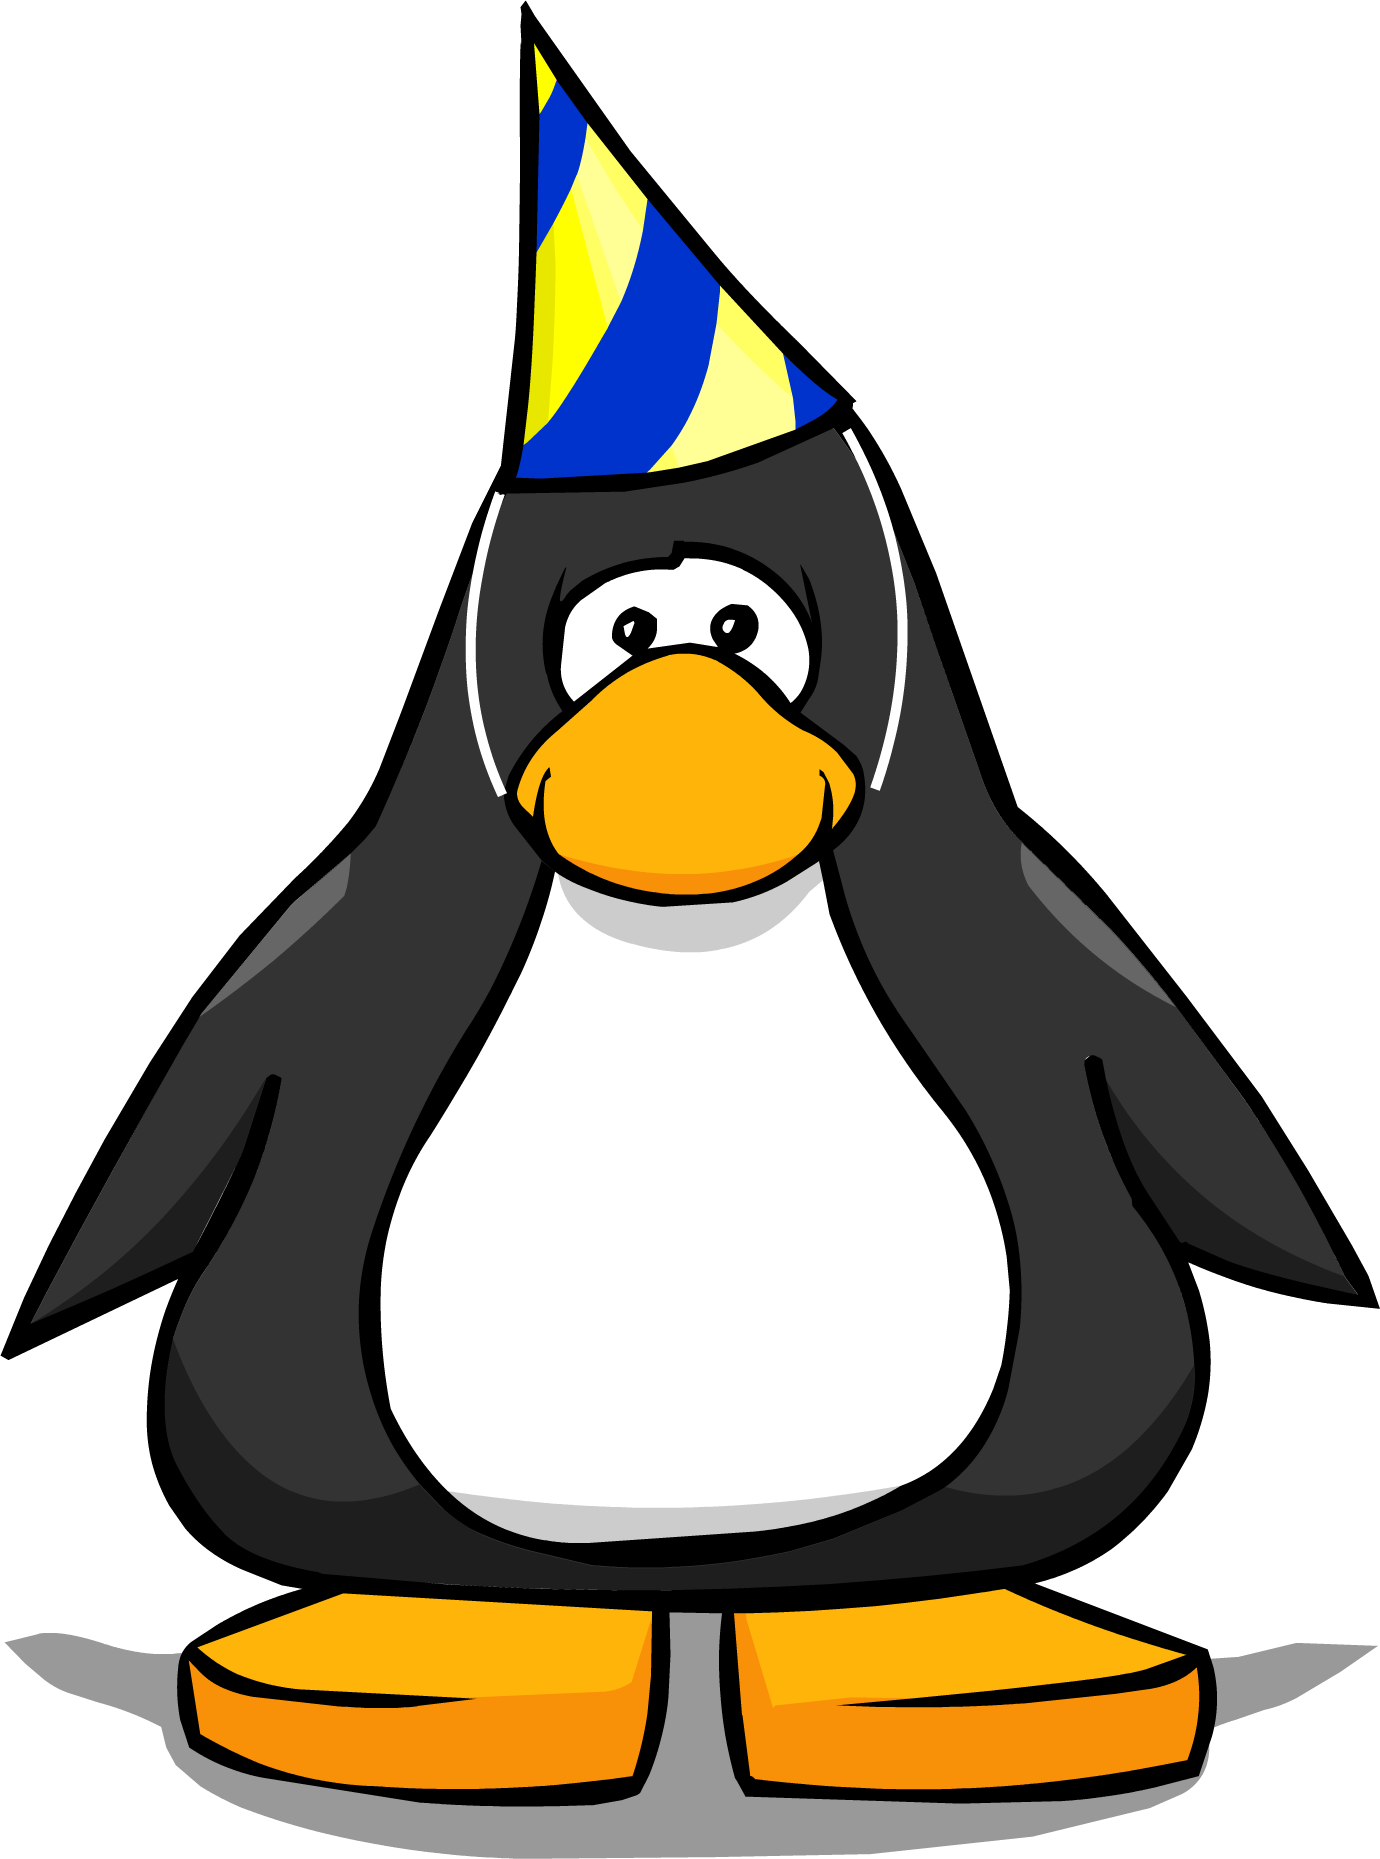 Club penguin penguin png. Image beta hat player